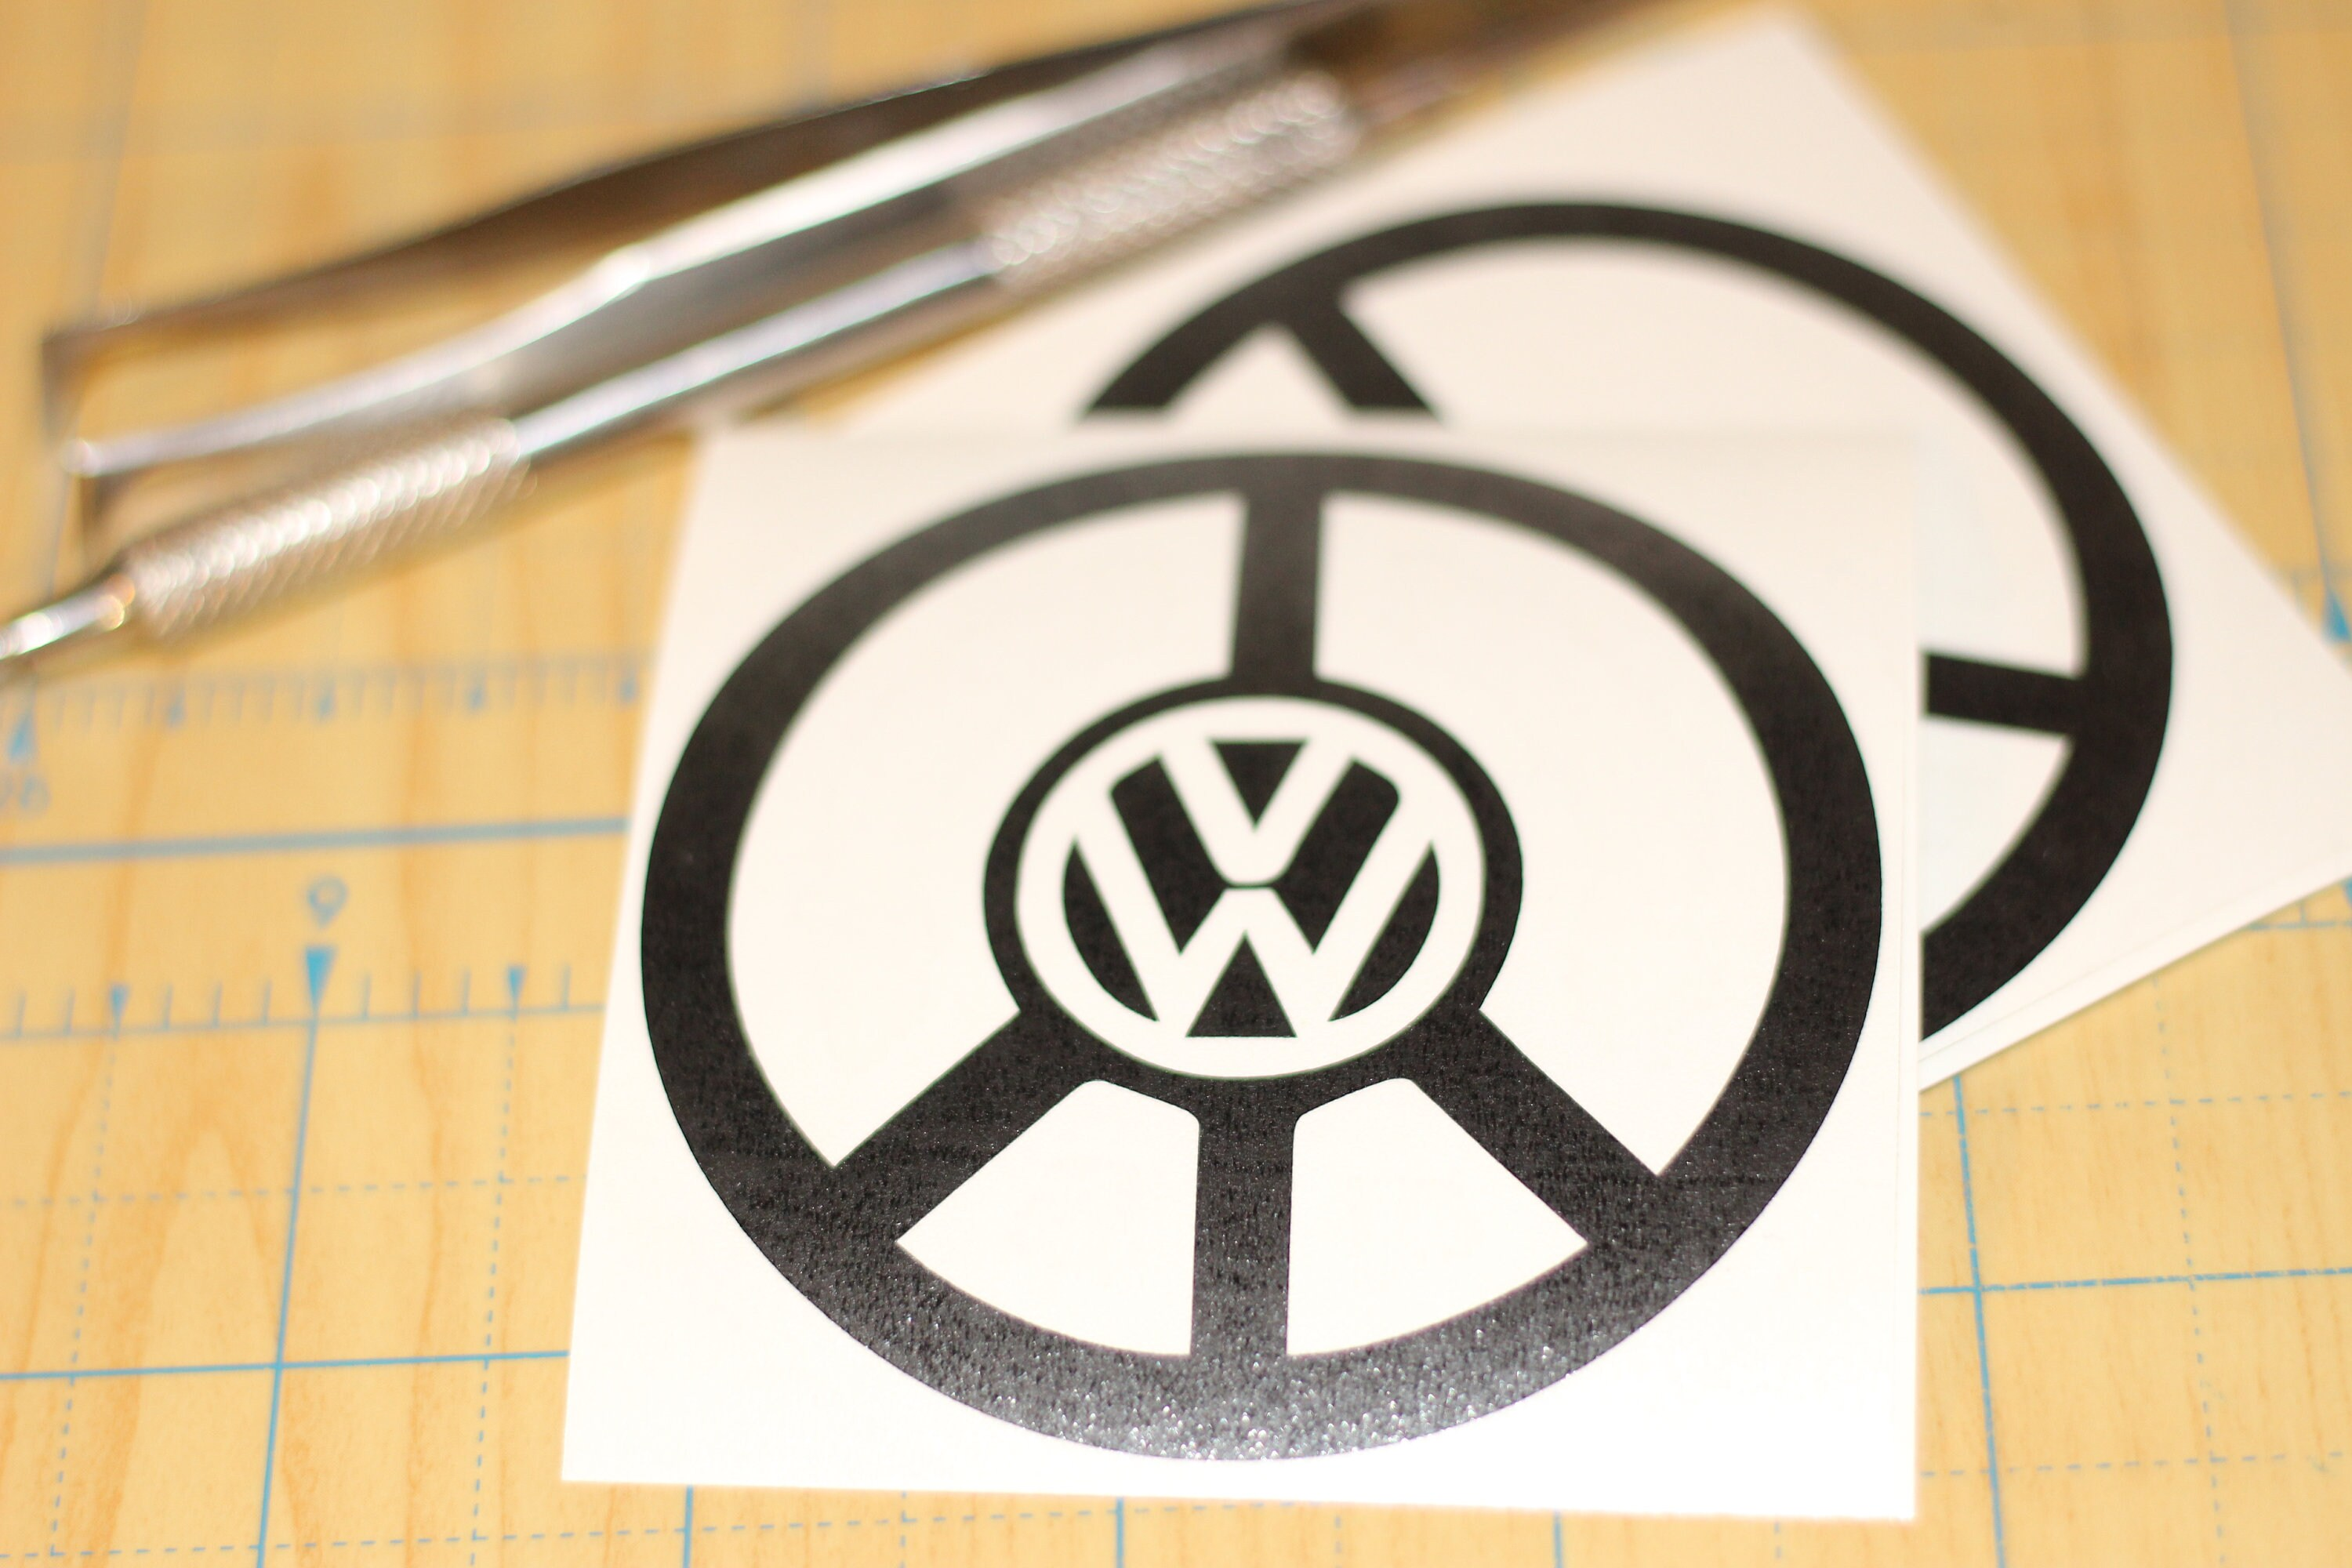 Vw Peace Sign Decal Volkswagen In A Peace Symbol Decal